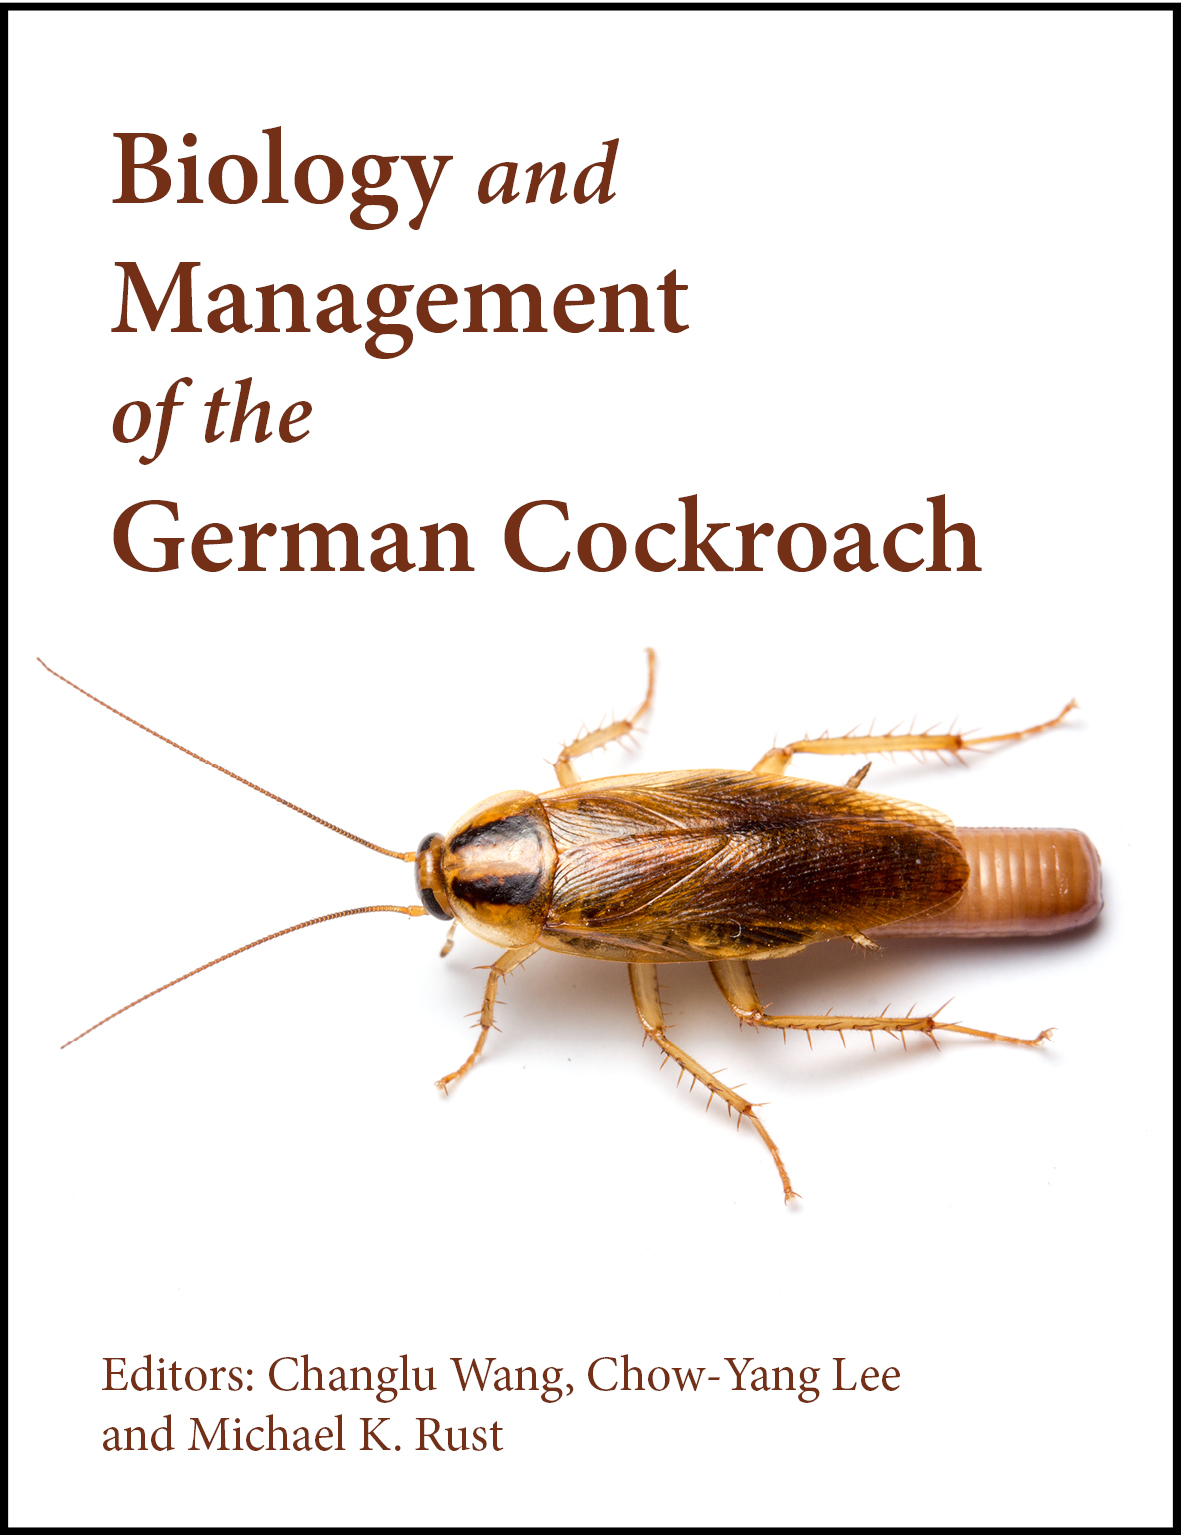 Biology and Management of The German Cockroach